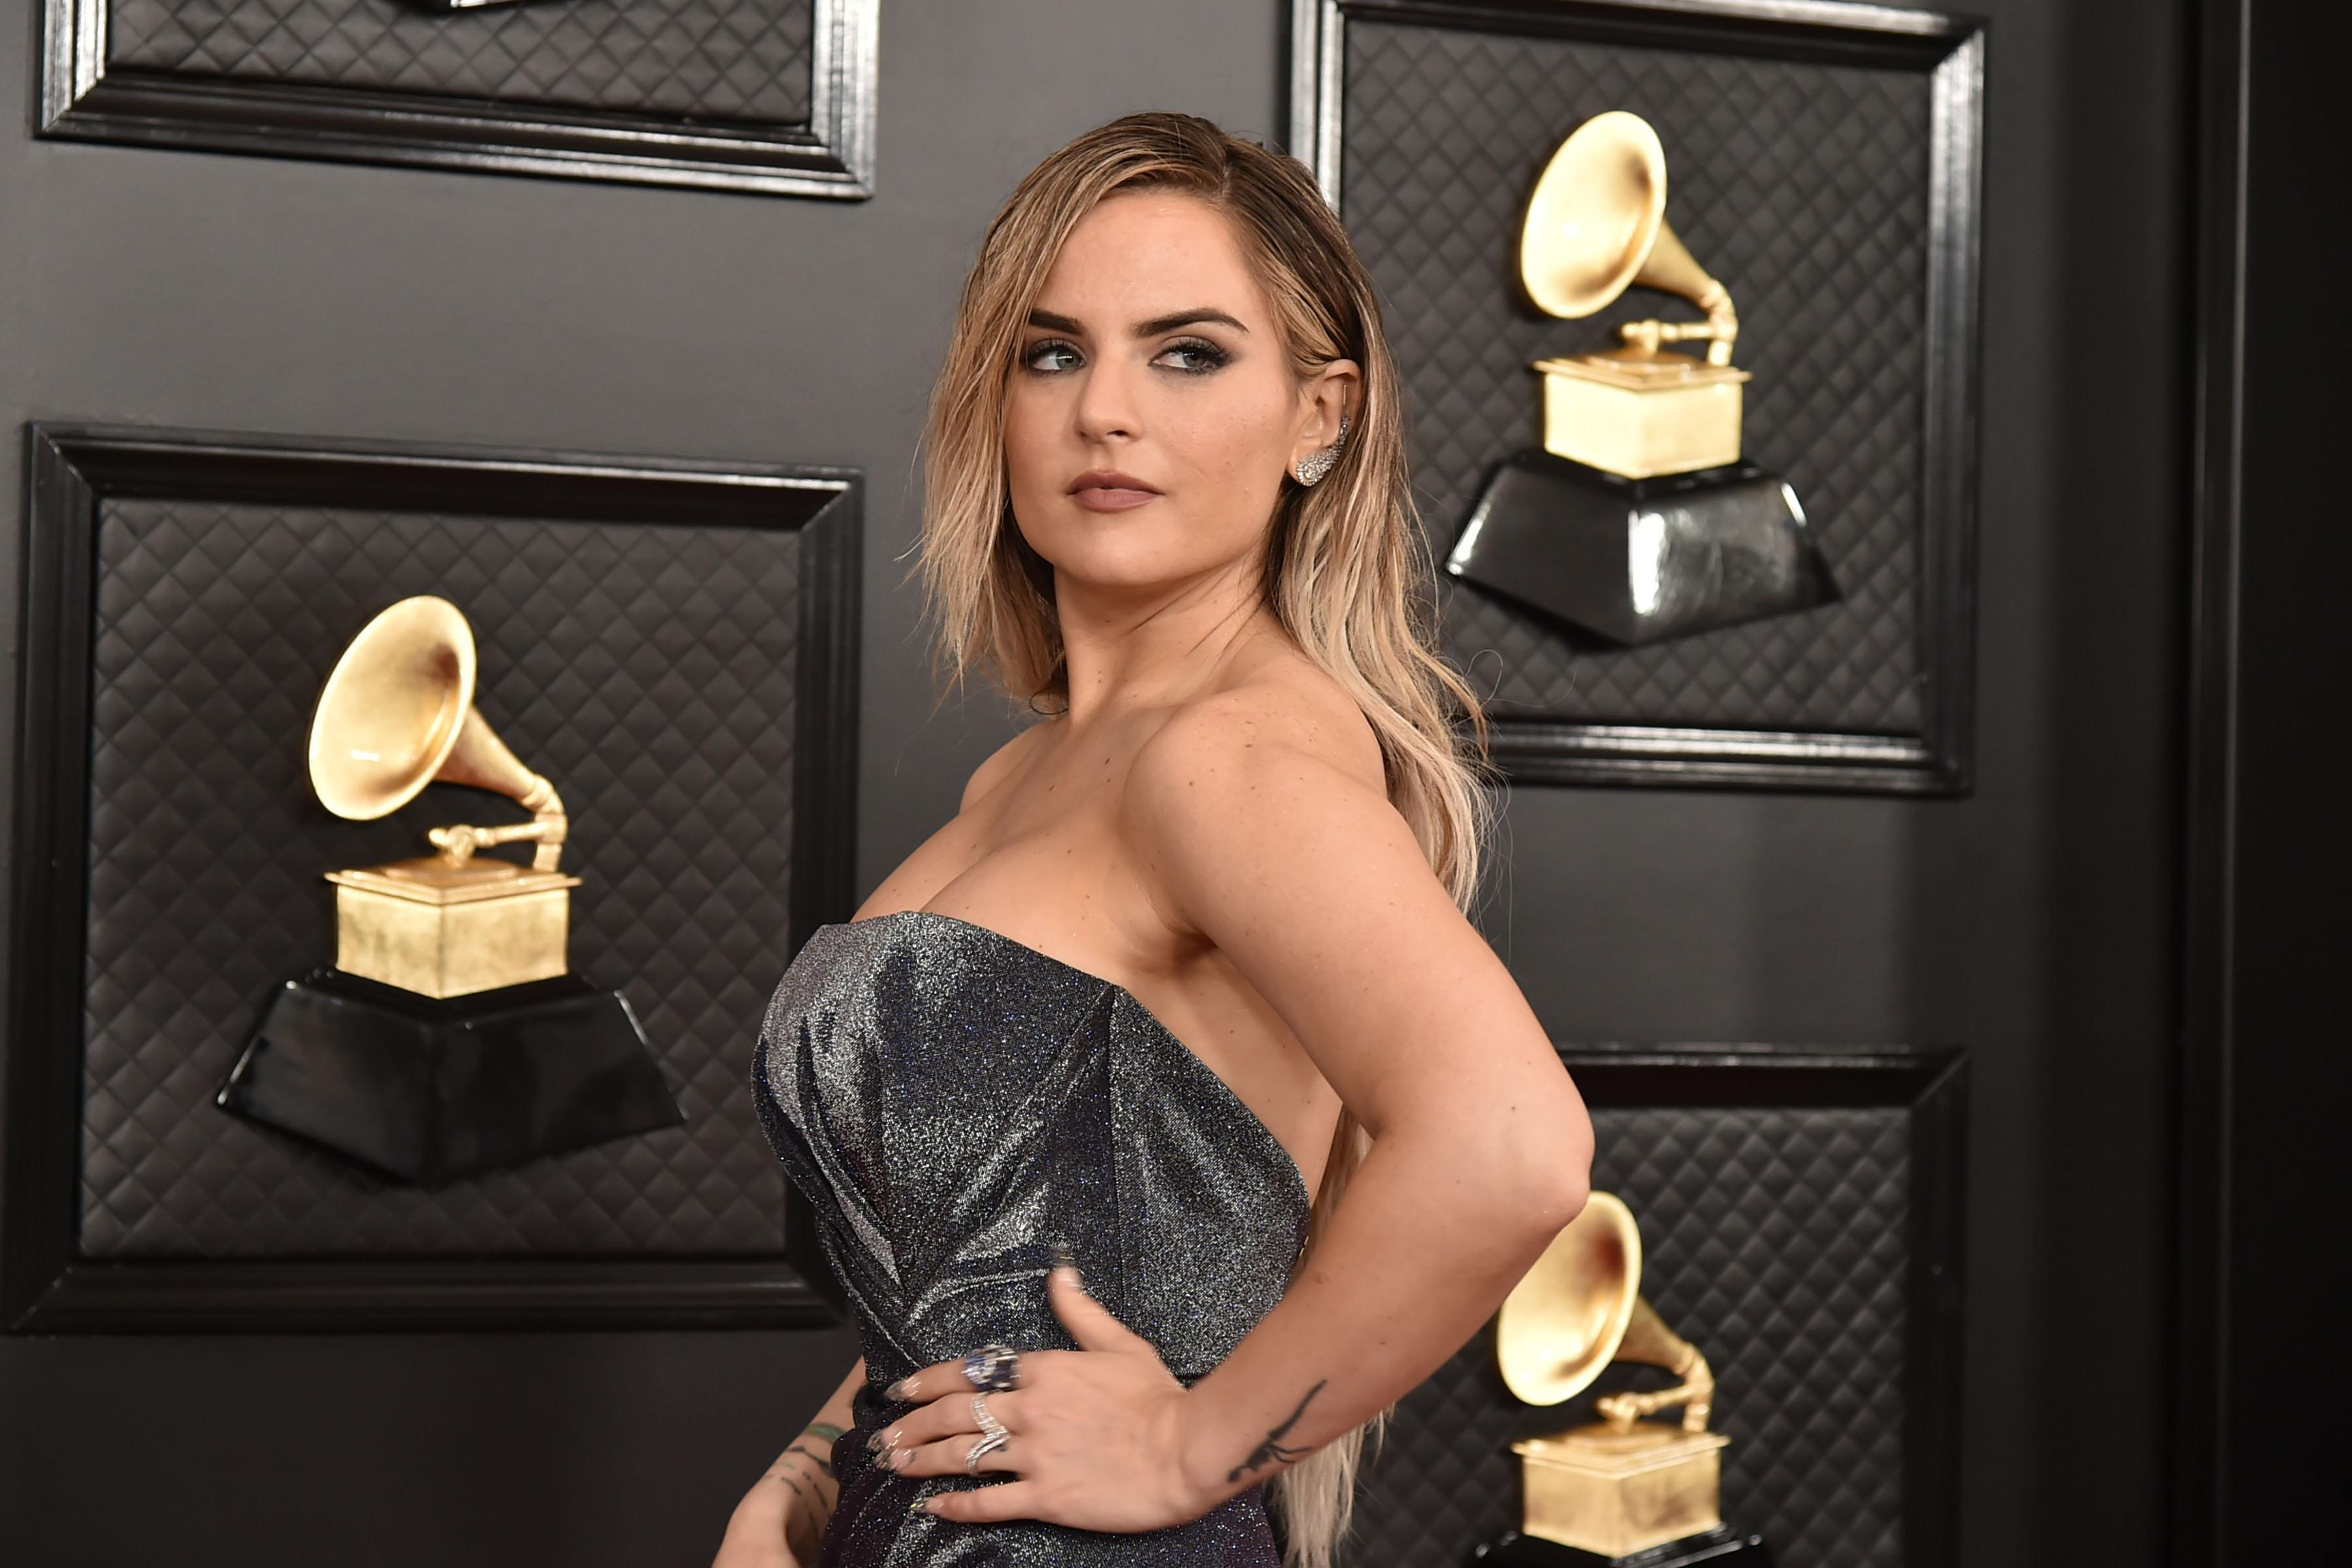 Singer JoJo says she was put on a 500-calorie a day diet at 18-years-old